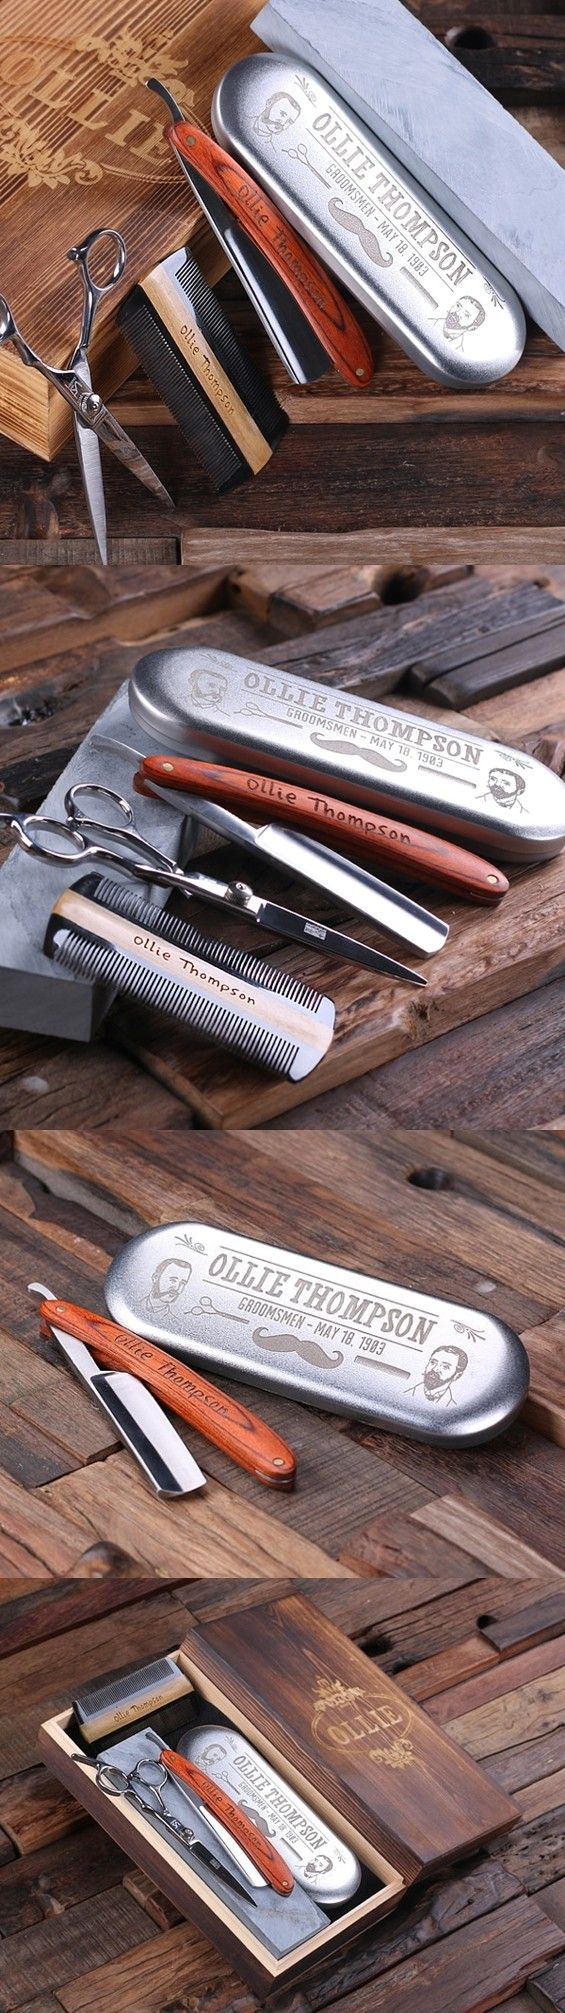 Personalized Barber Grooming Set w/ Straight Razor & Sharpening Stone | Personalized Gifts and Party Favors